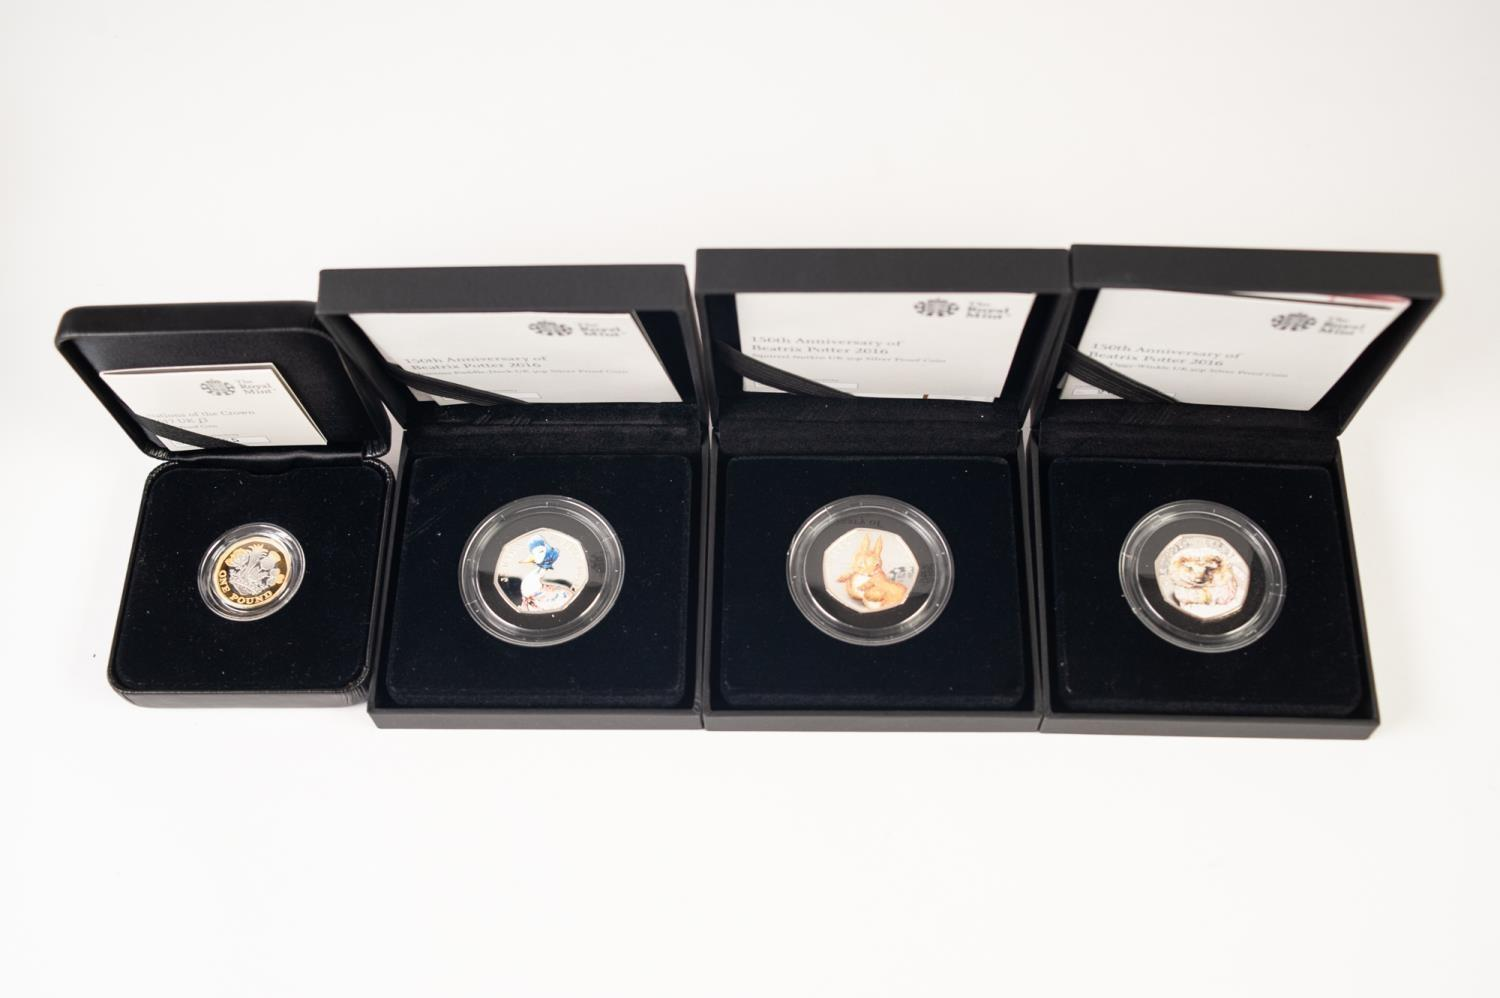 Lot 4 - THREE ROYAL MINT BEATRIX POTTER 150th ANNIVERSARY PROOF SILVER 50 PENCE PICTORIAL COINS 2016, each a